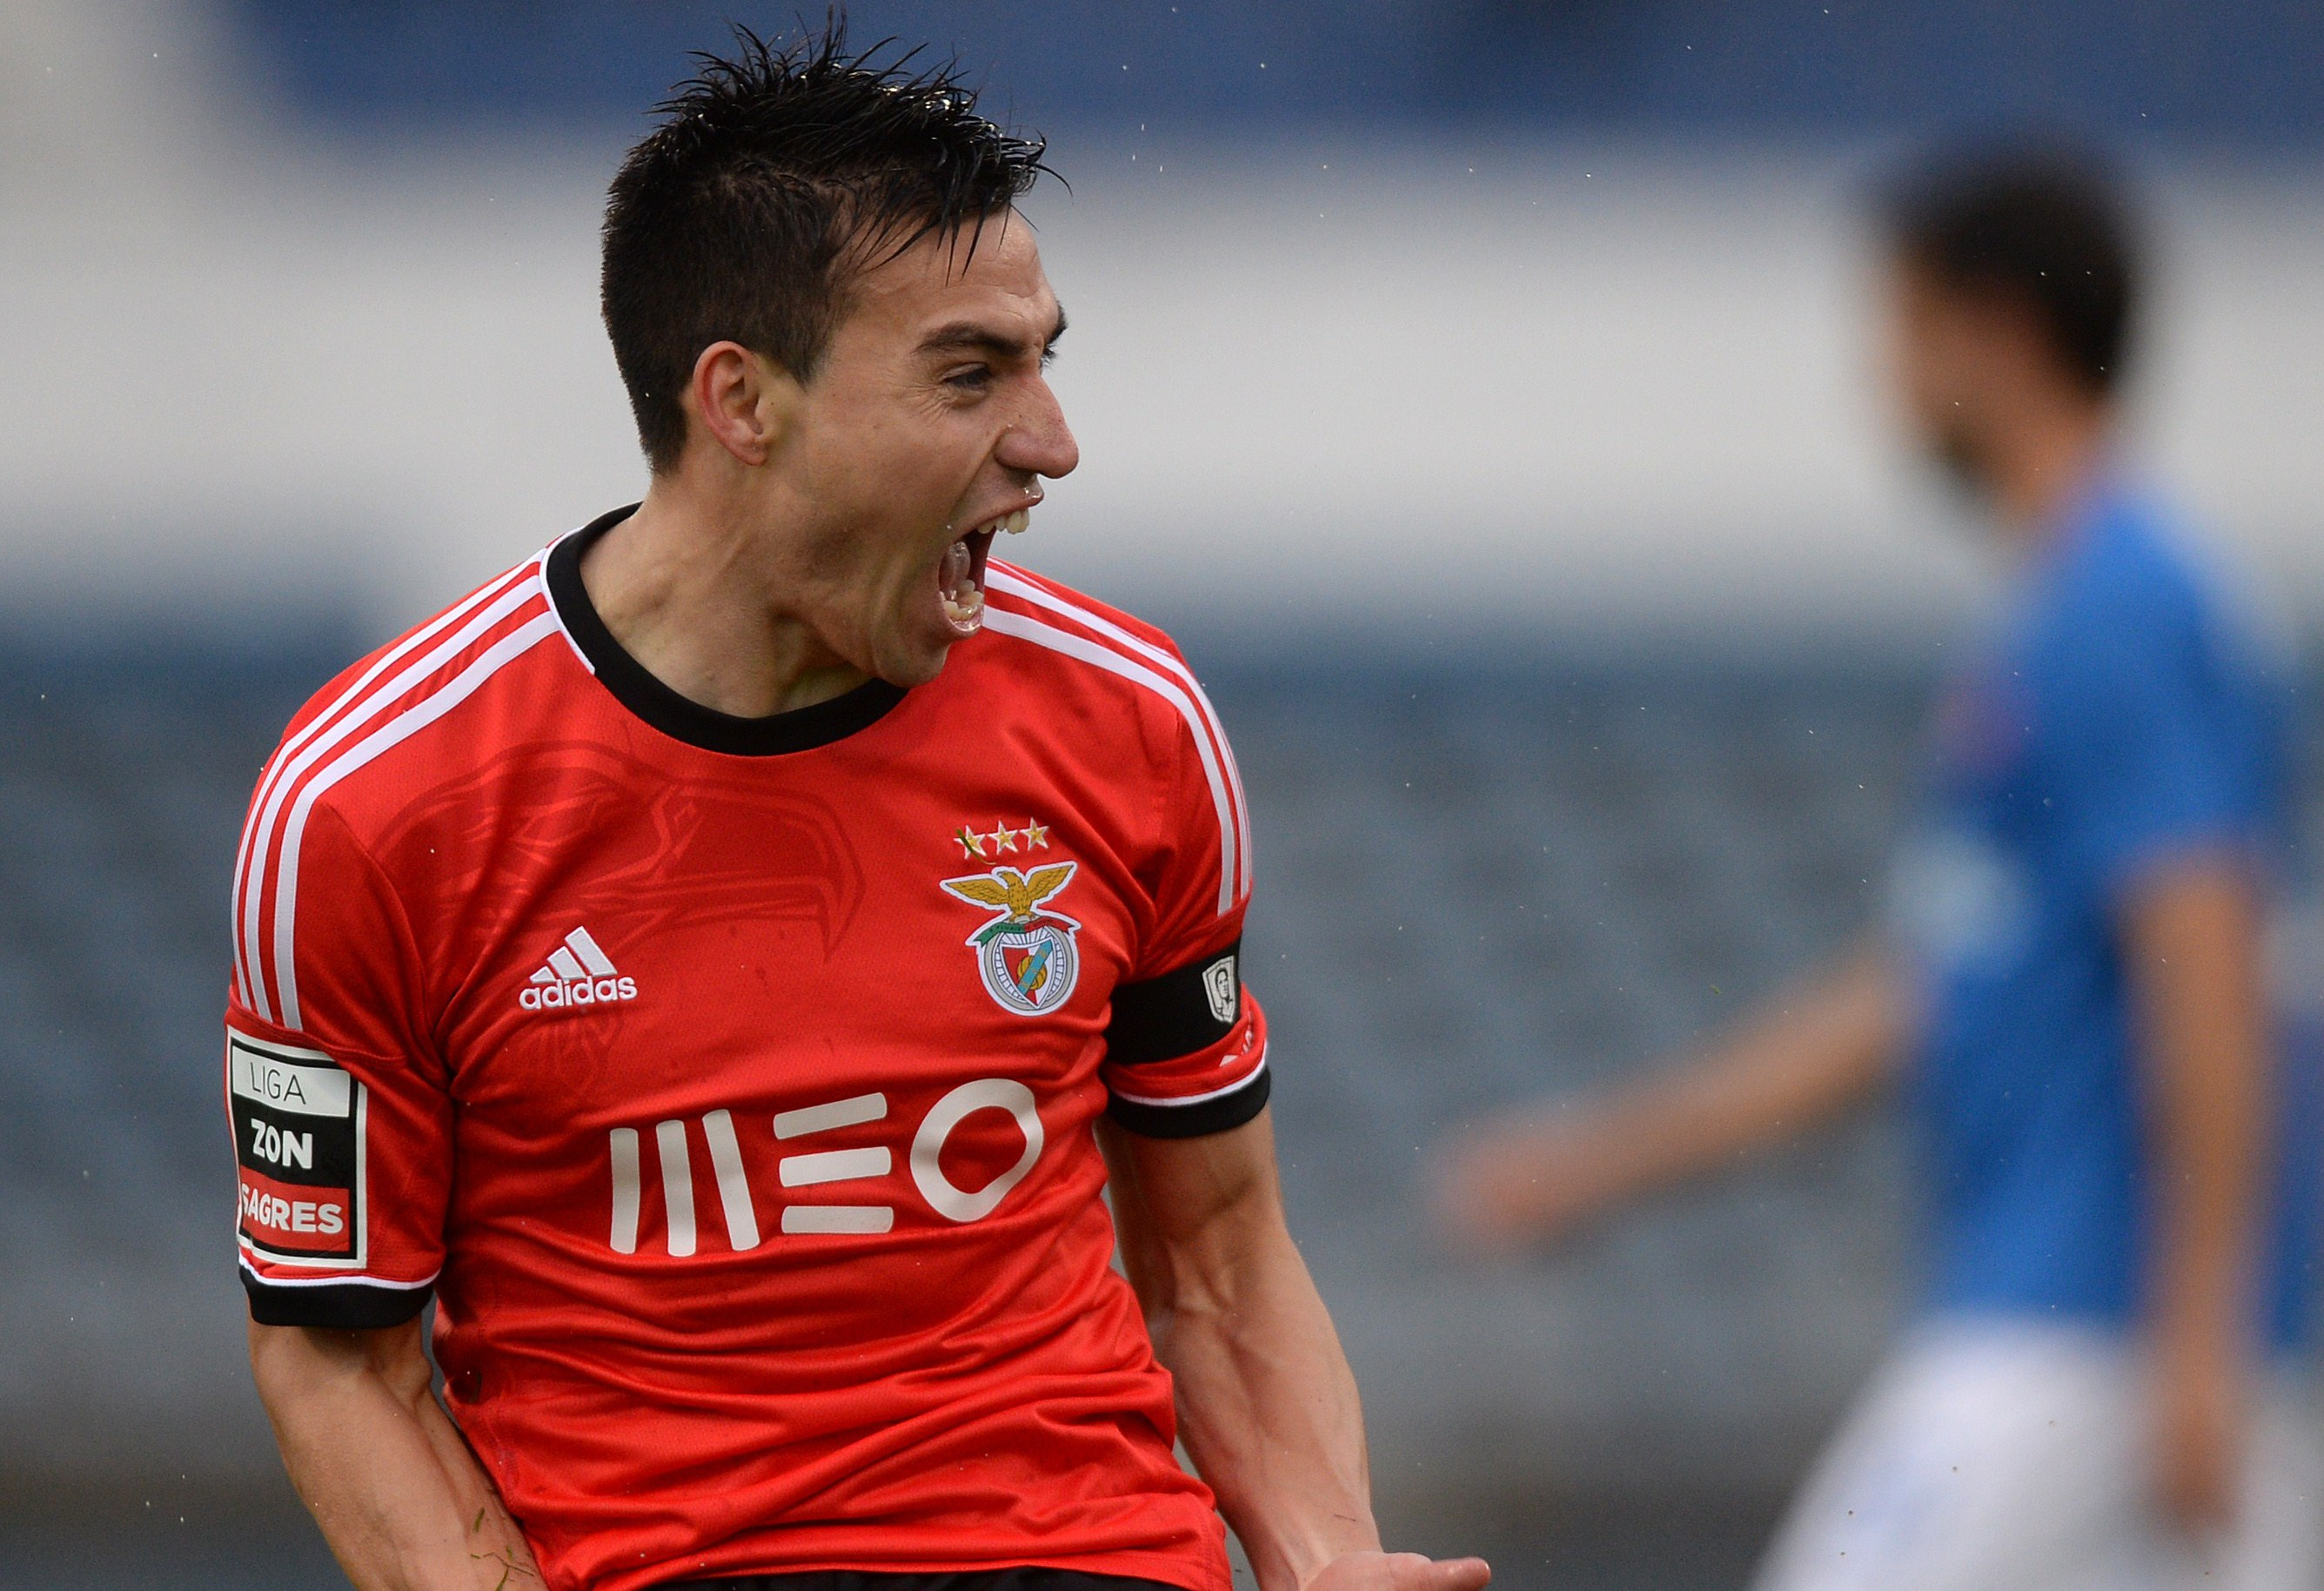 Benfica's Argentinian forward Nicolas Gaitan celebrates scoring the opening goal during the Portuguese league football match OS Belenenses vs SL Benfica at the Restelo stadium in Lisbon on March 2, 2014. AFP PHOTO/ FRANCISCO LEONG (Photo credit should read FRANCISCO LEONG/AFP/Getty Images)